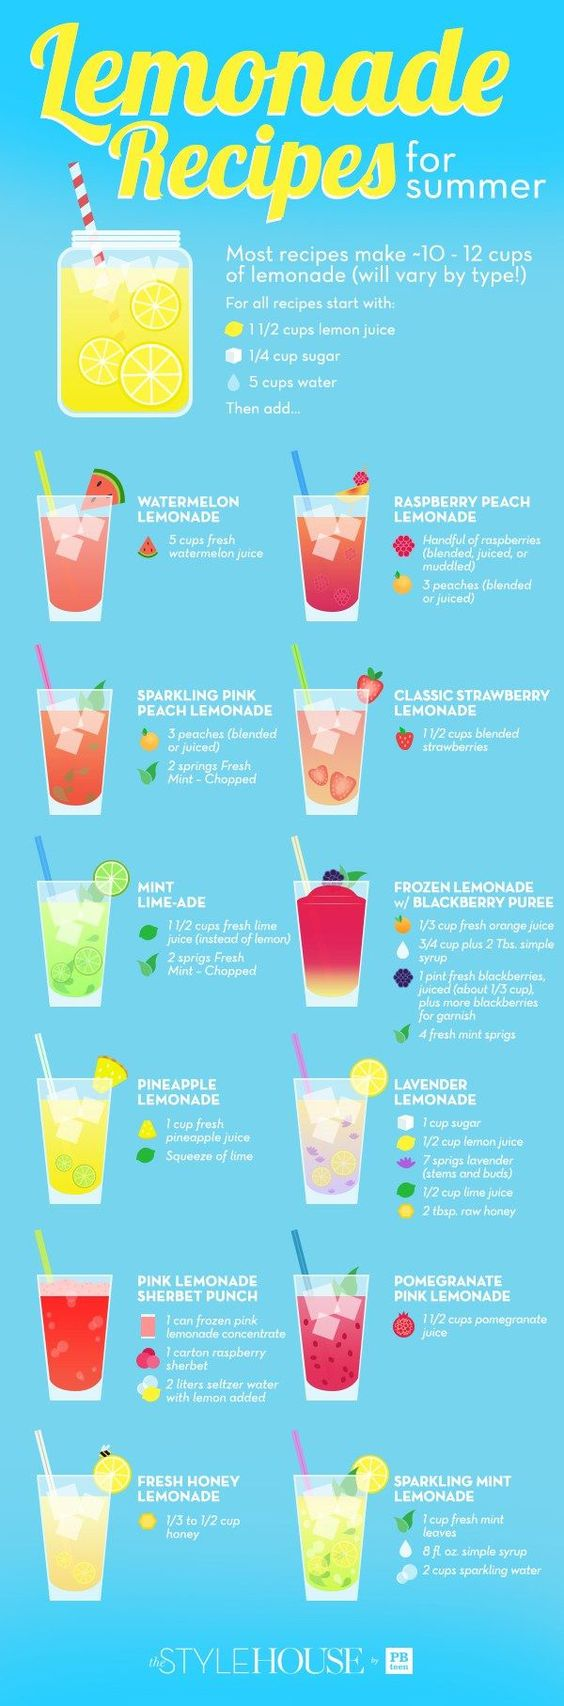 Lemonade Recipes for Summer ... I would probably make SUGAR FREE varieties.: